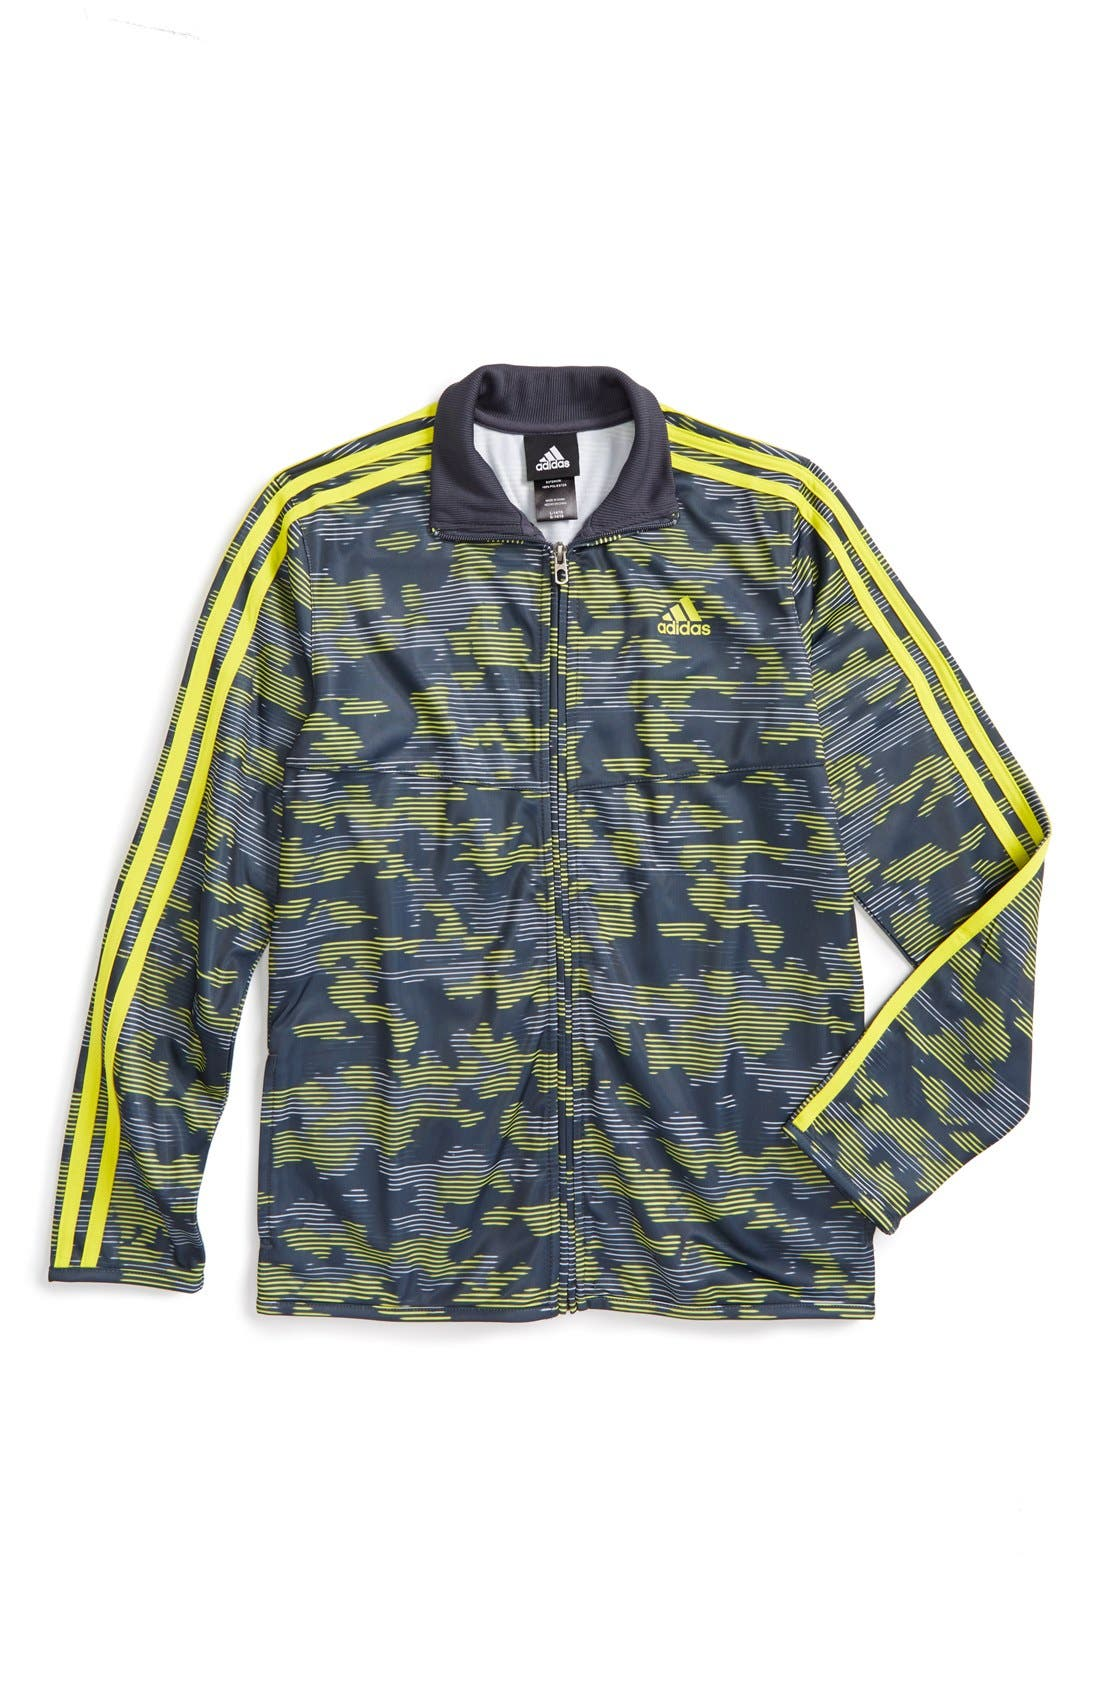 ADIDAS 'Digi Camo' Jacket, Main, color, 020